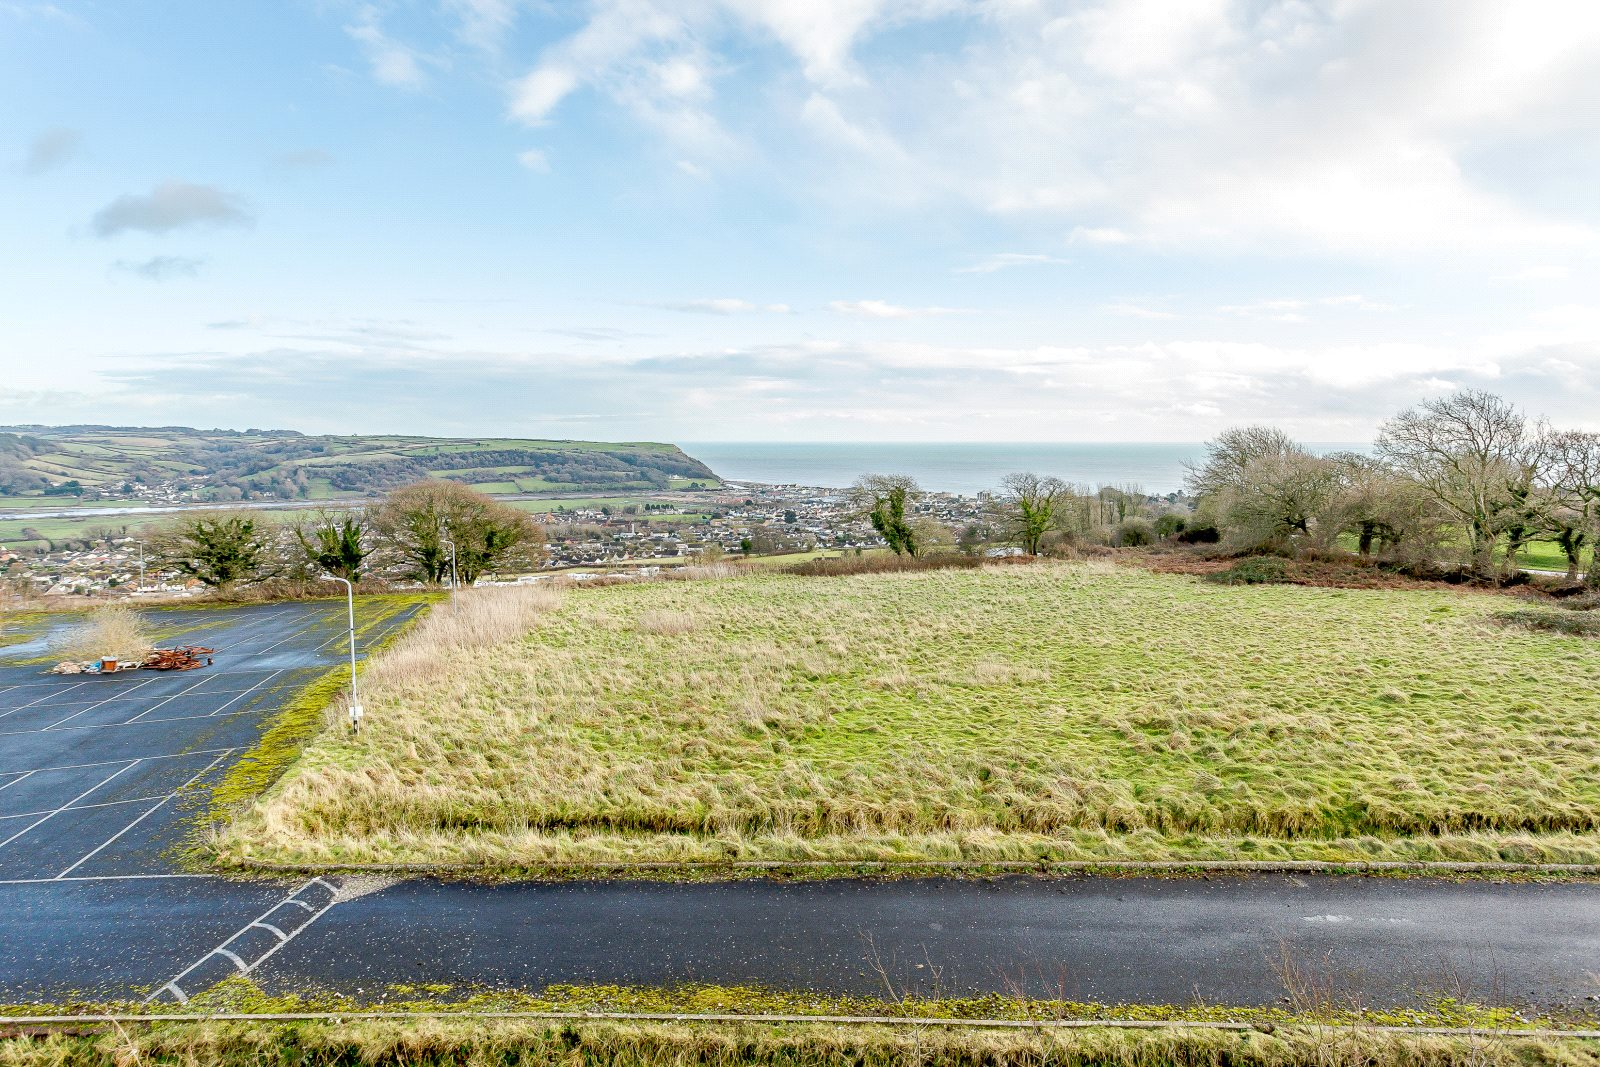 Land / Lot for Sale at Harepath Hill, Seaton, Devon, EX12 Seaton, England